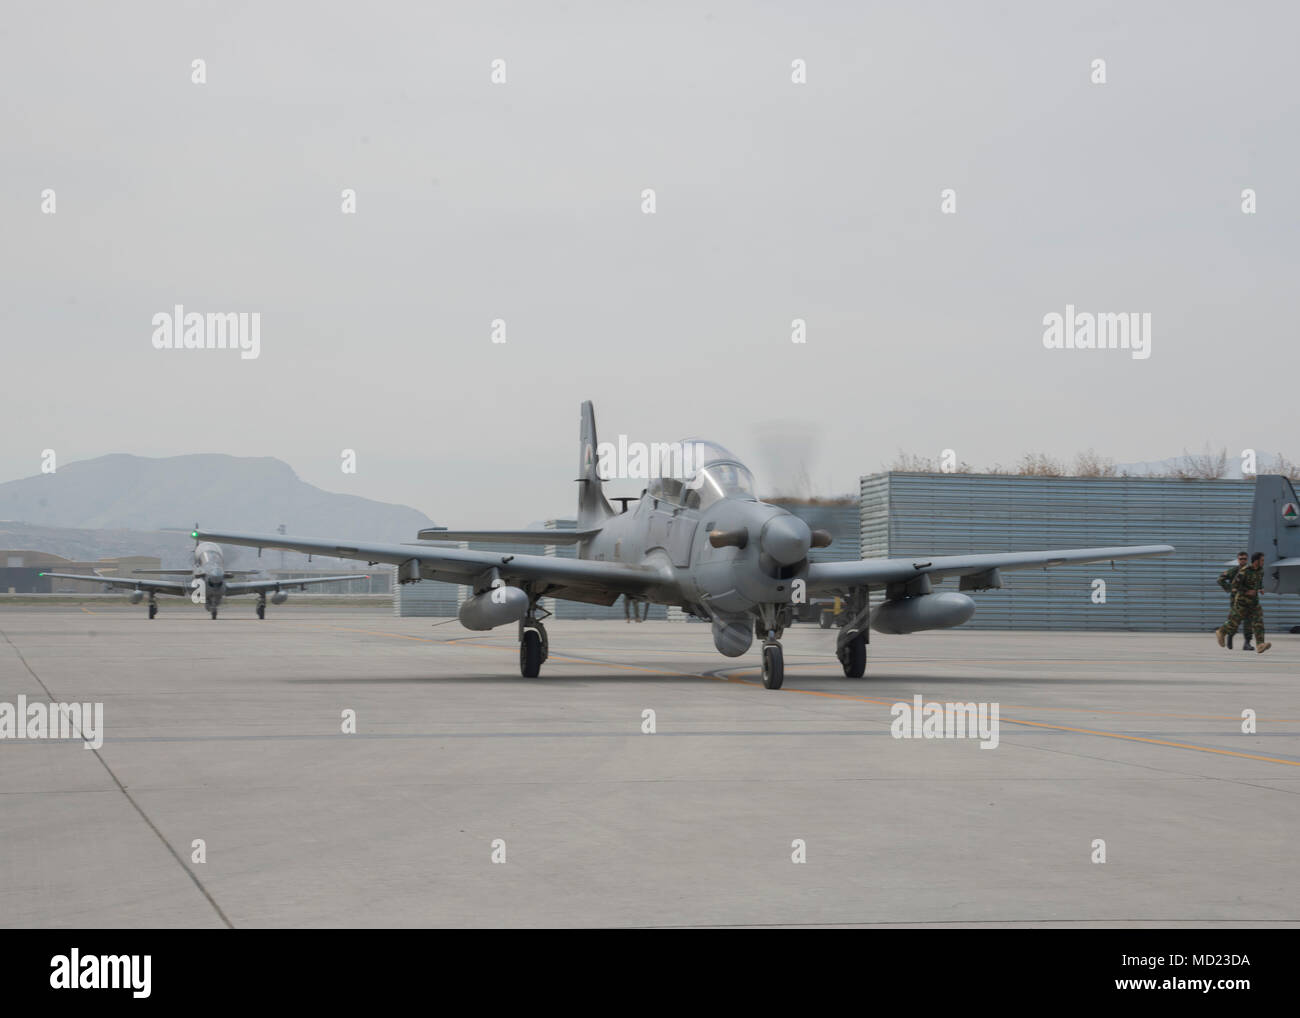 A pair of Afghan Air Force A-29s return after a mission